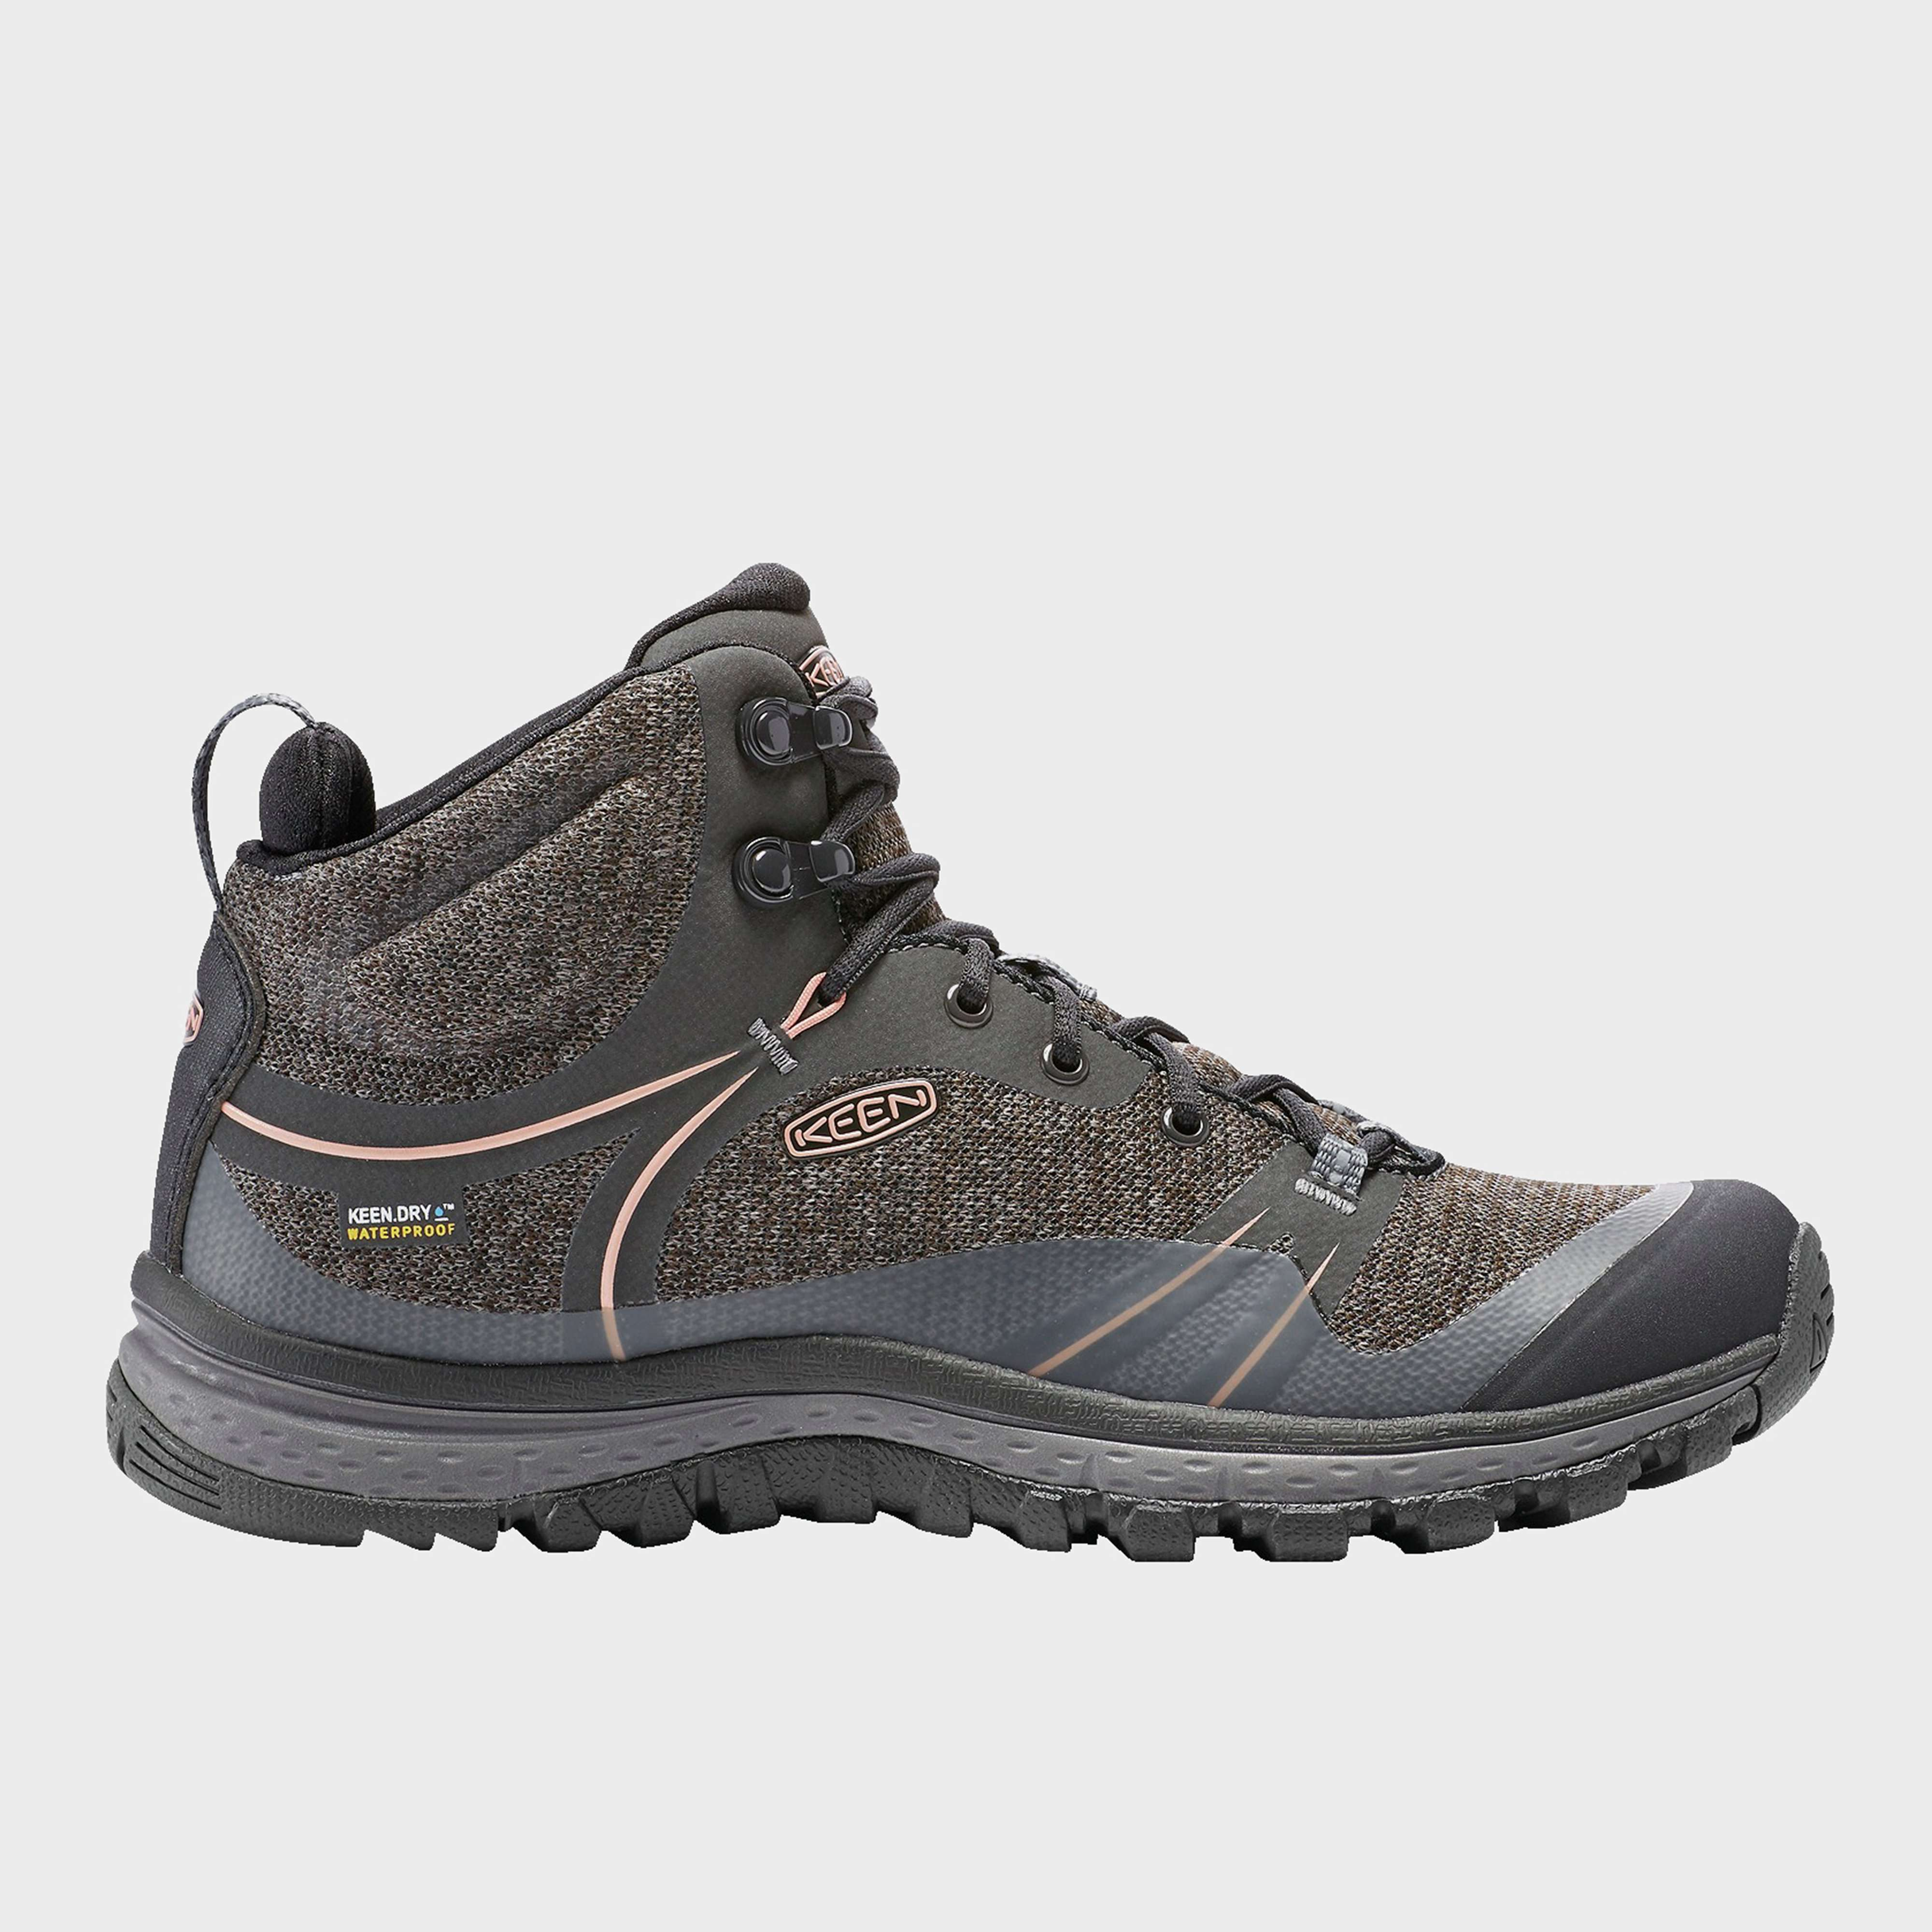 KEEN Women's Terradora Waterproof Mid